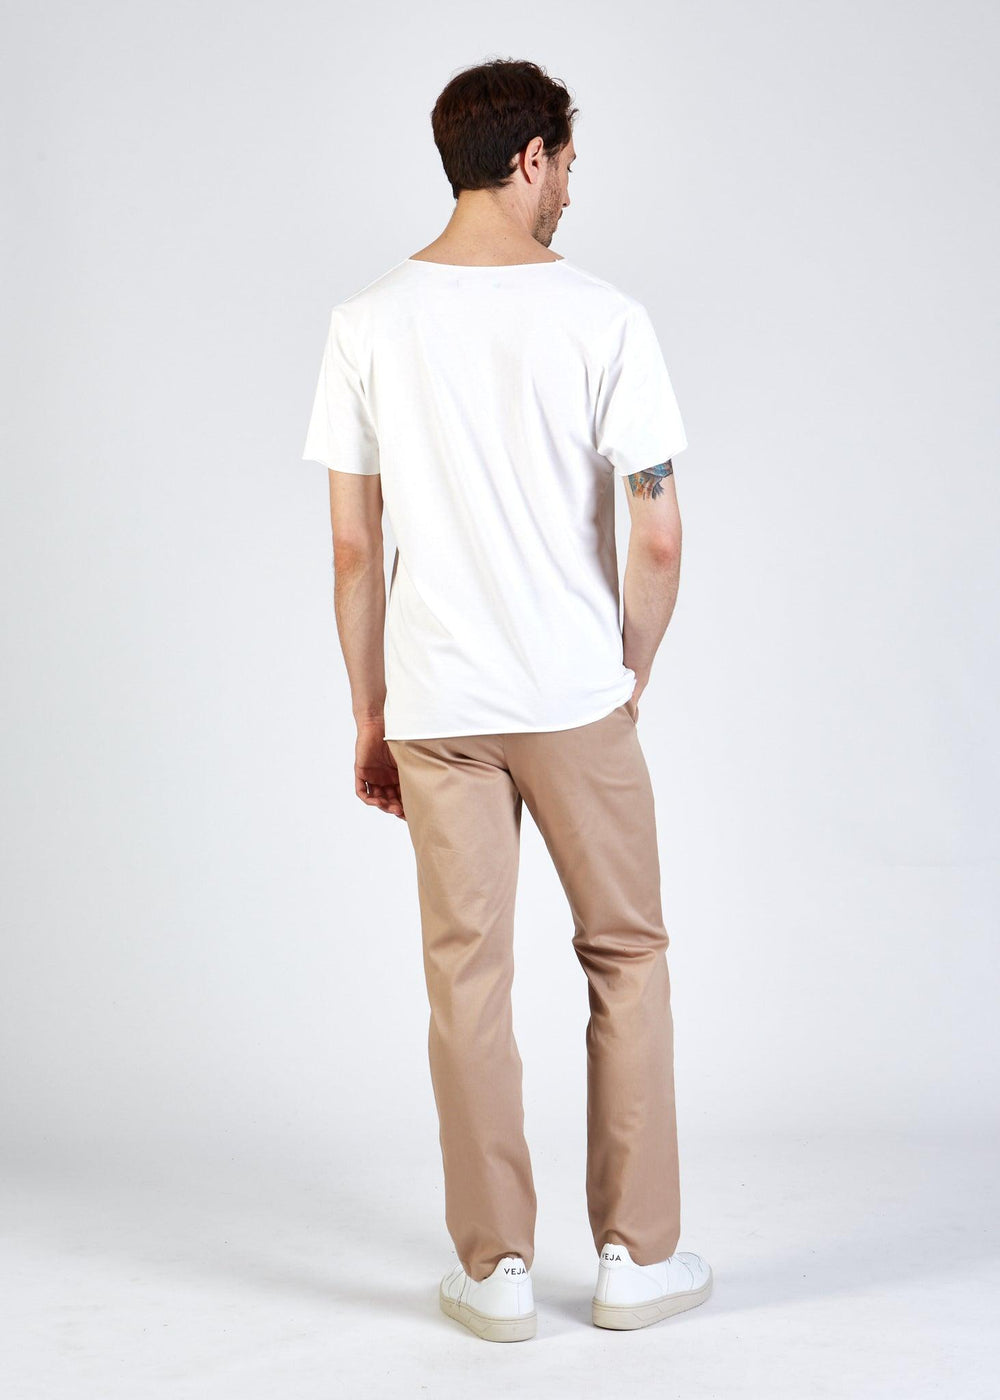 Givn BERLIN New Foundland T-Shirt White